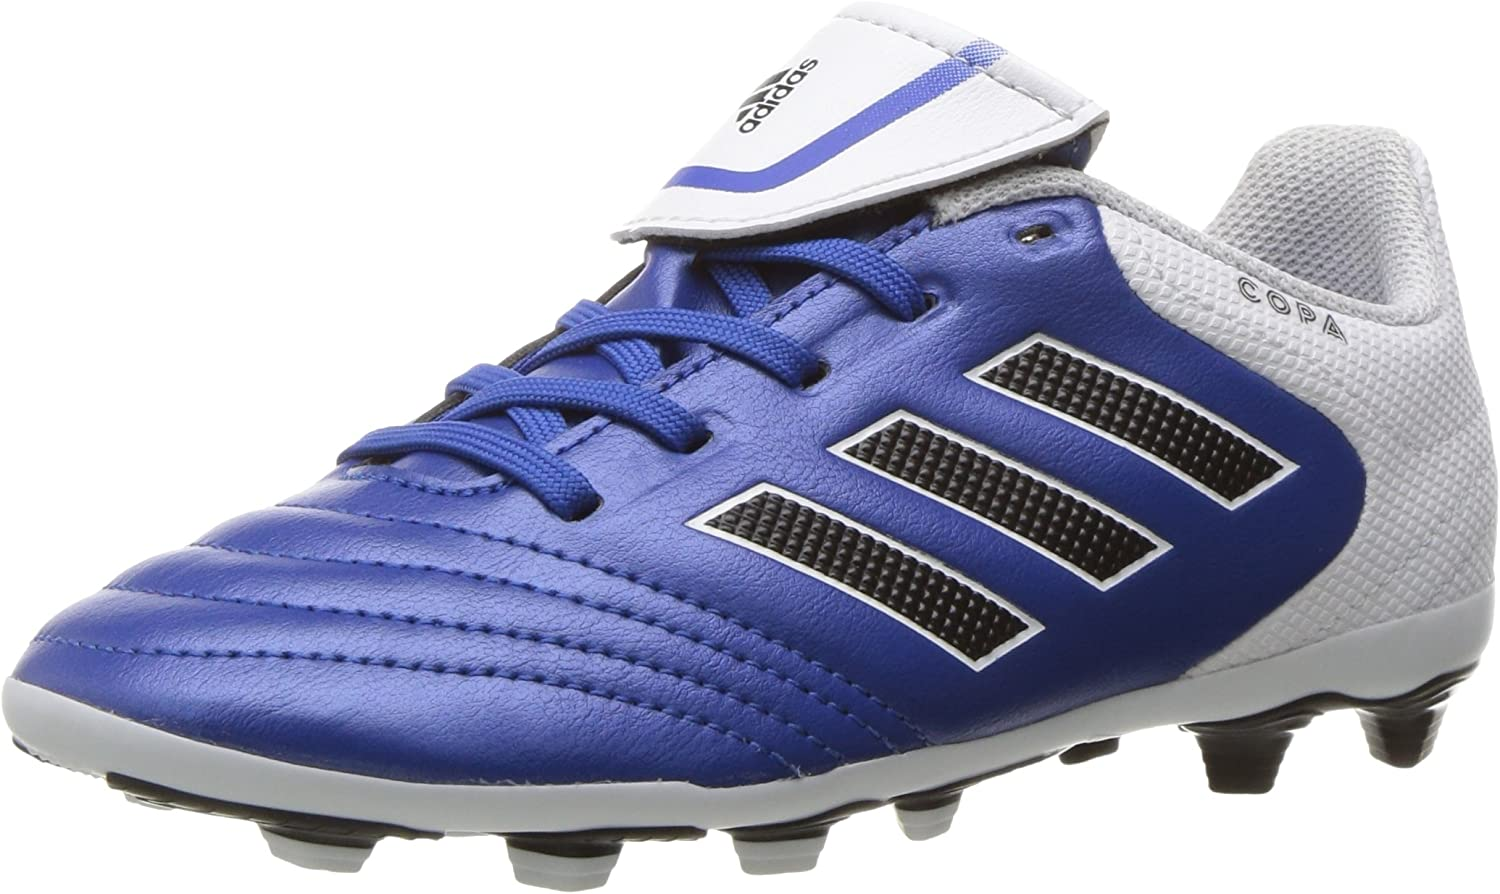 Adidas Copa 17.4 FxG Cleat Kid's Soccer bluee